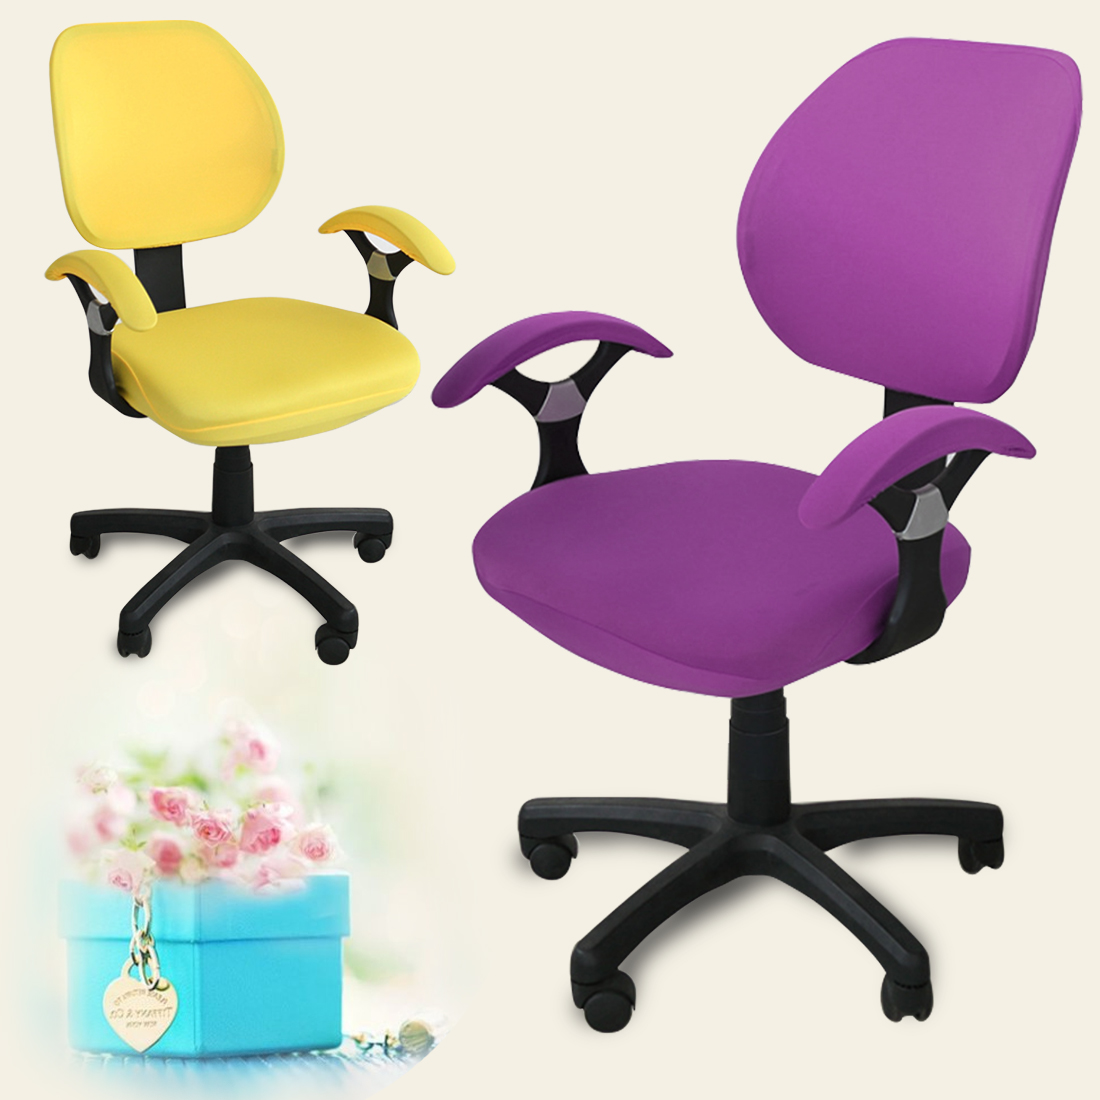 Revolving Chair Supplier School Desk Vintage Aliexpress Buy Spandex Elastic Fabric Seat Covers